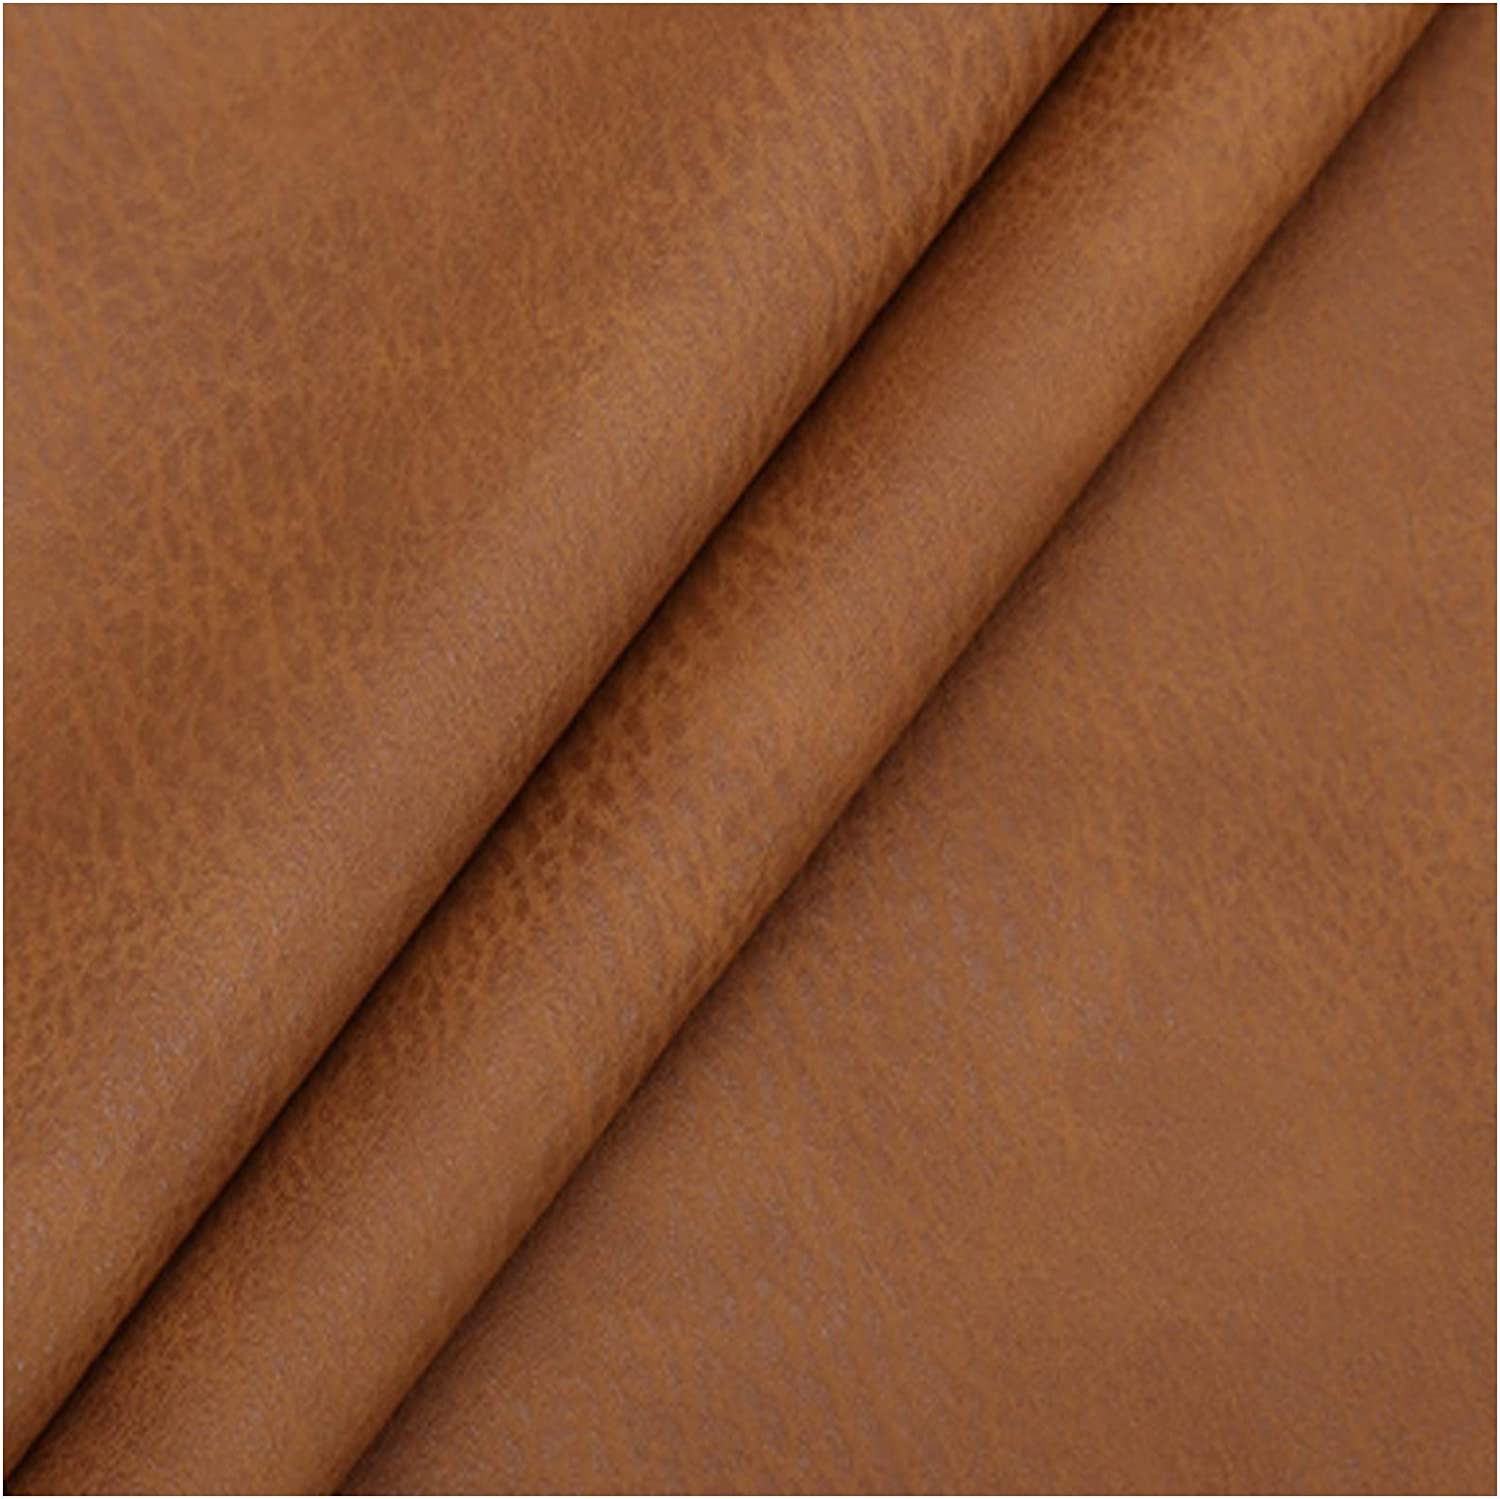 Grained Faux Leather Fabric Max 48% Over item handling ☆ OFF 1.2mm Thick Leathe Leatherette Vinyl